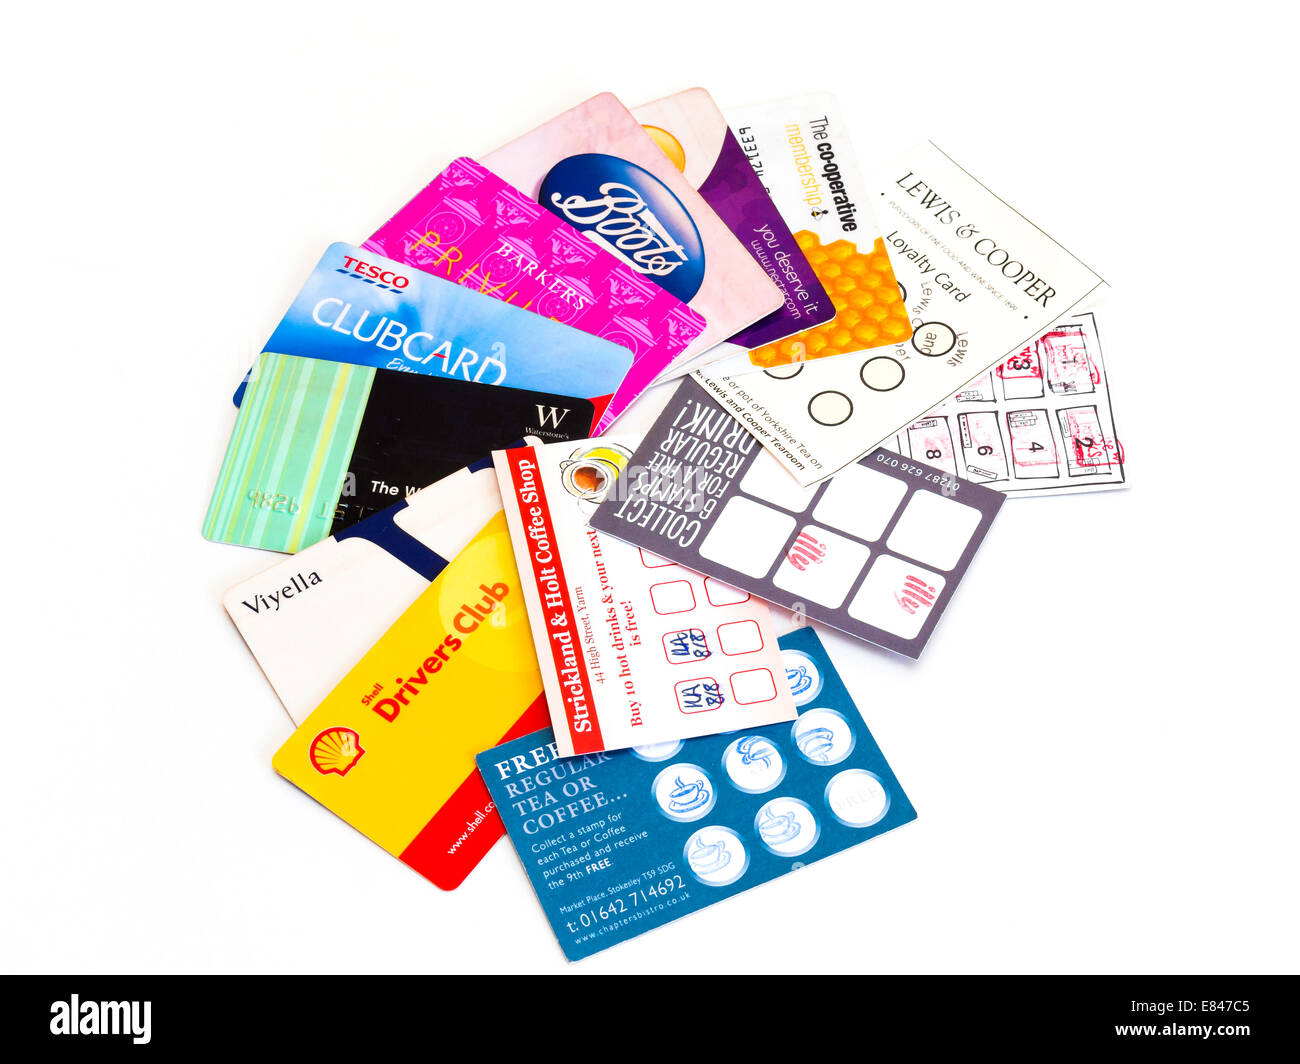 A collection of loyalty cards for cafés restaurants and retail outlets on a white background - Stock Image